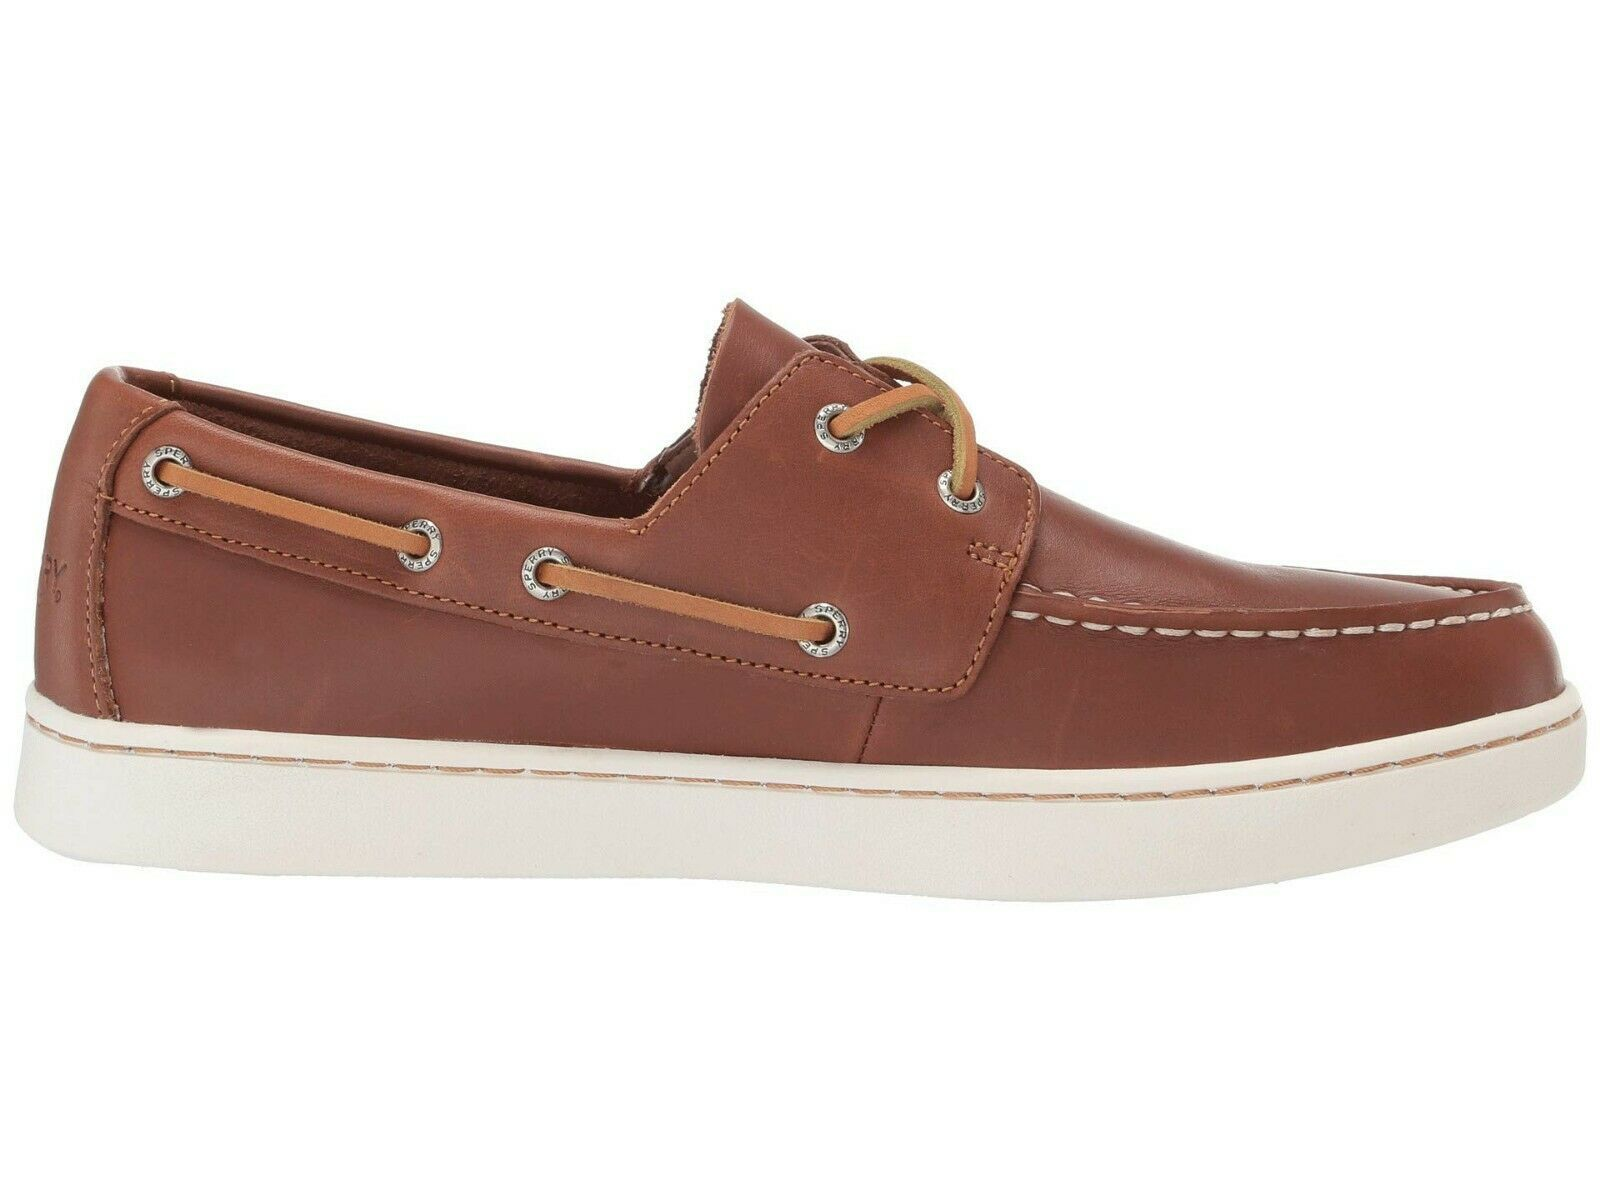 Men's Sperry Top-Sider Cup 2 Eye Leather Oxford, STS18791 Multiple Sizes Tan image 6